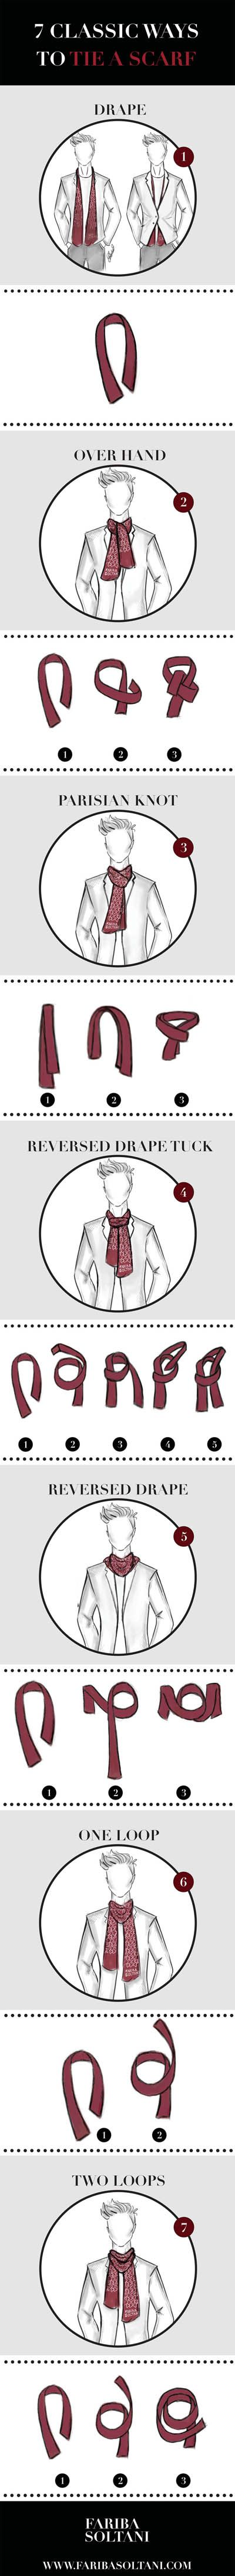 7 classic ways to tie a scarf- This infographic is aimed to answer the question we received from many people as how to tie a scarf. We decided to create an infographic to show step by step how to style your scarf in 7 classic ways.